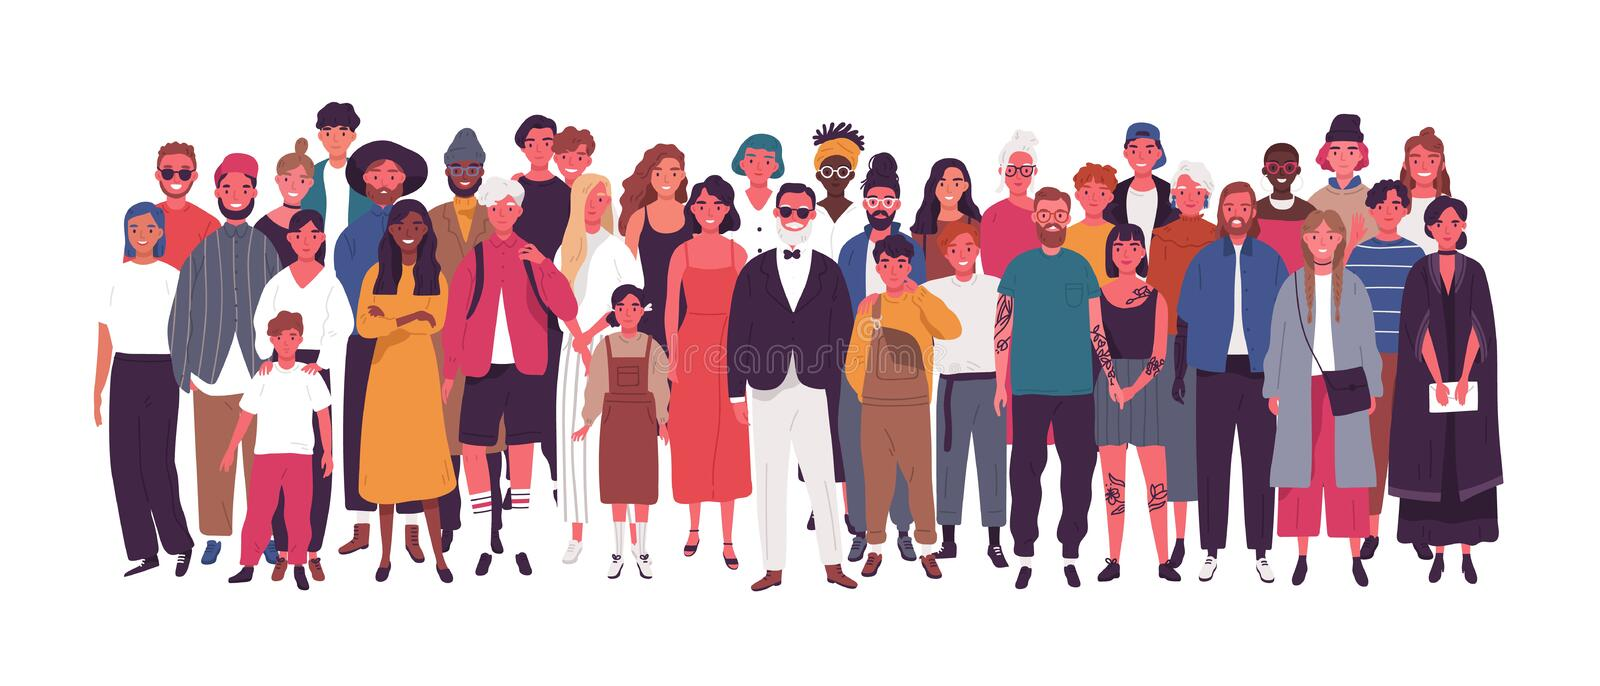 Diverse multiethnic or multinational group of people isolated on white background. Elderly and young men, women and kids. Standing together. Society or vector illustration